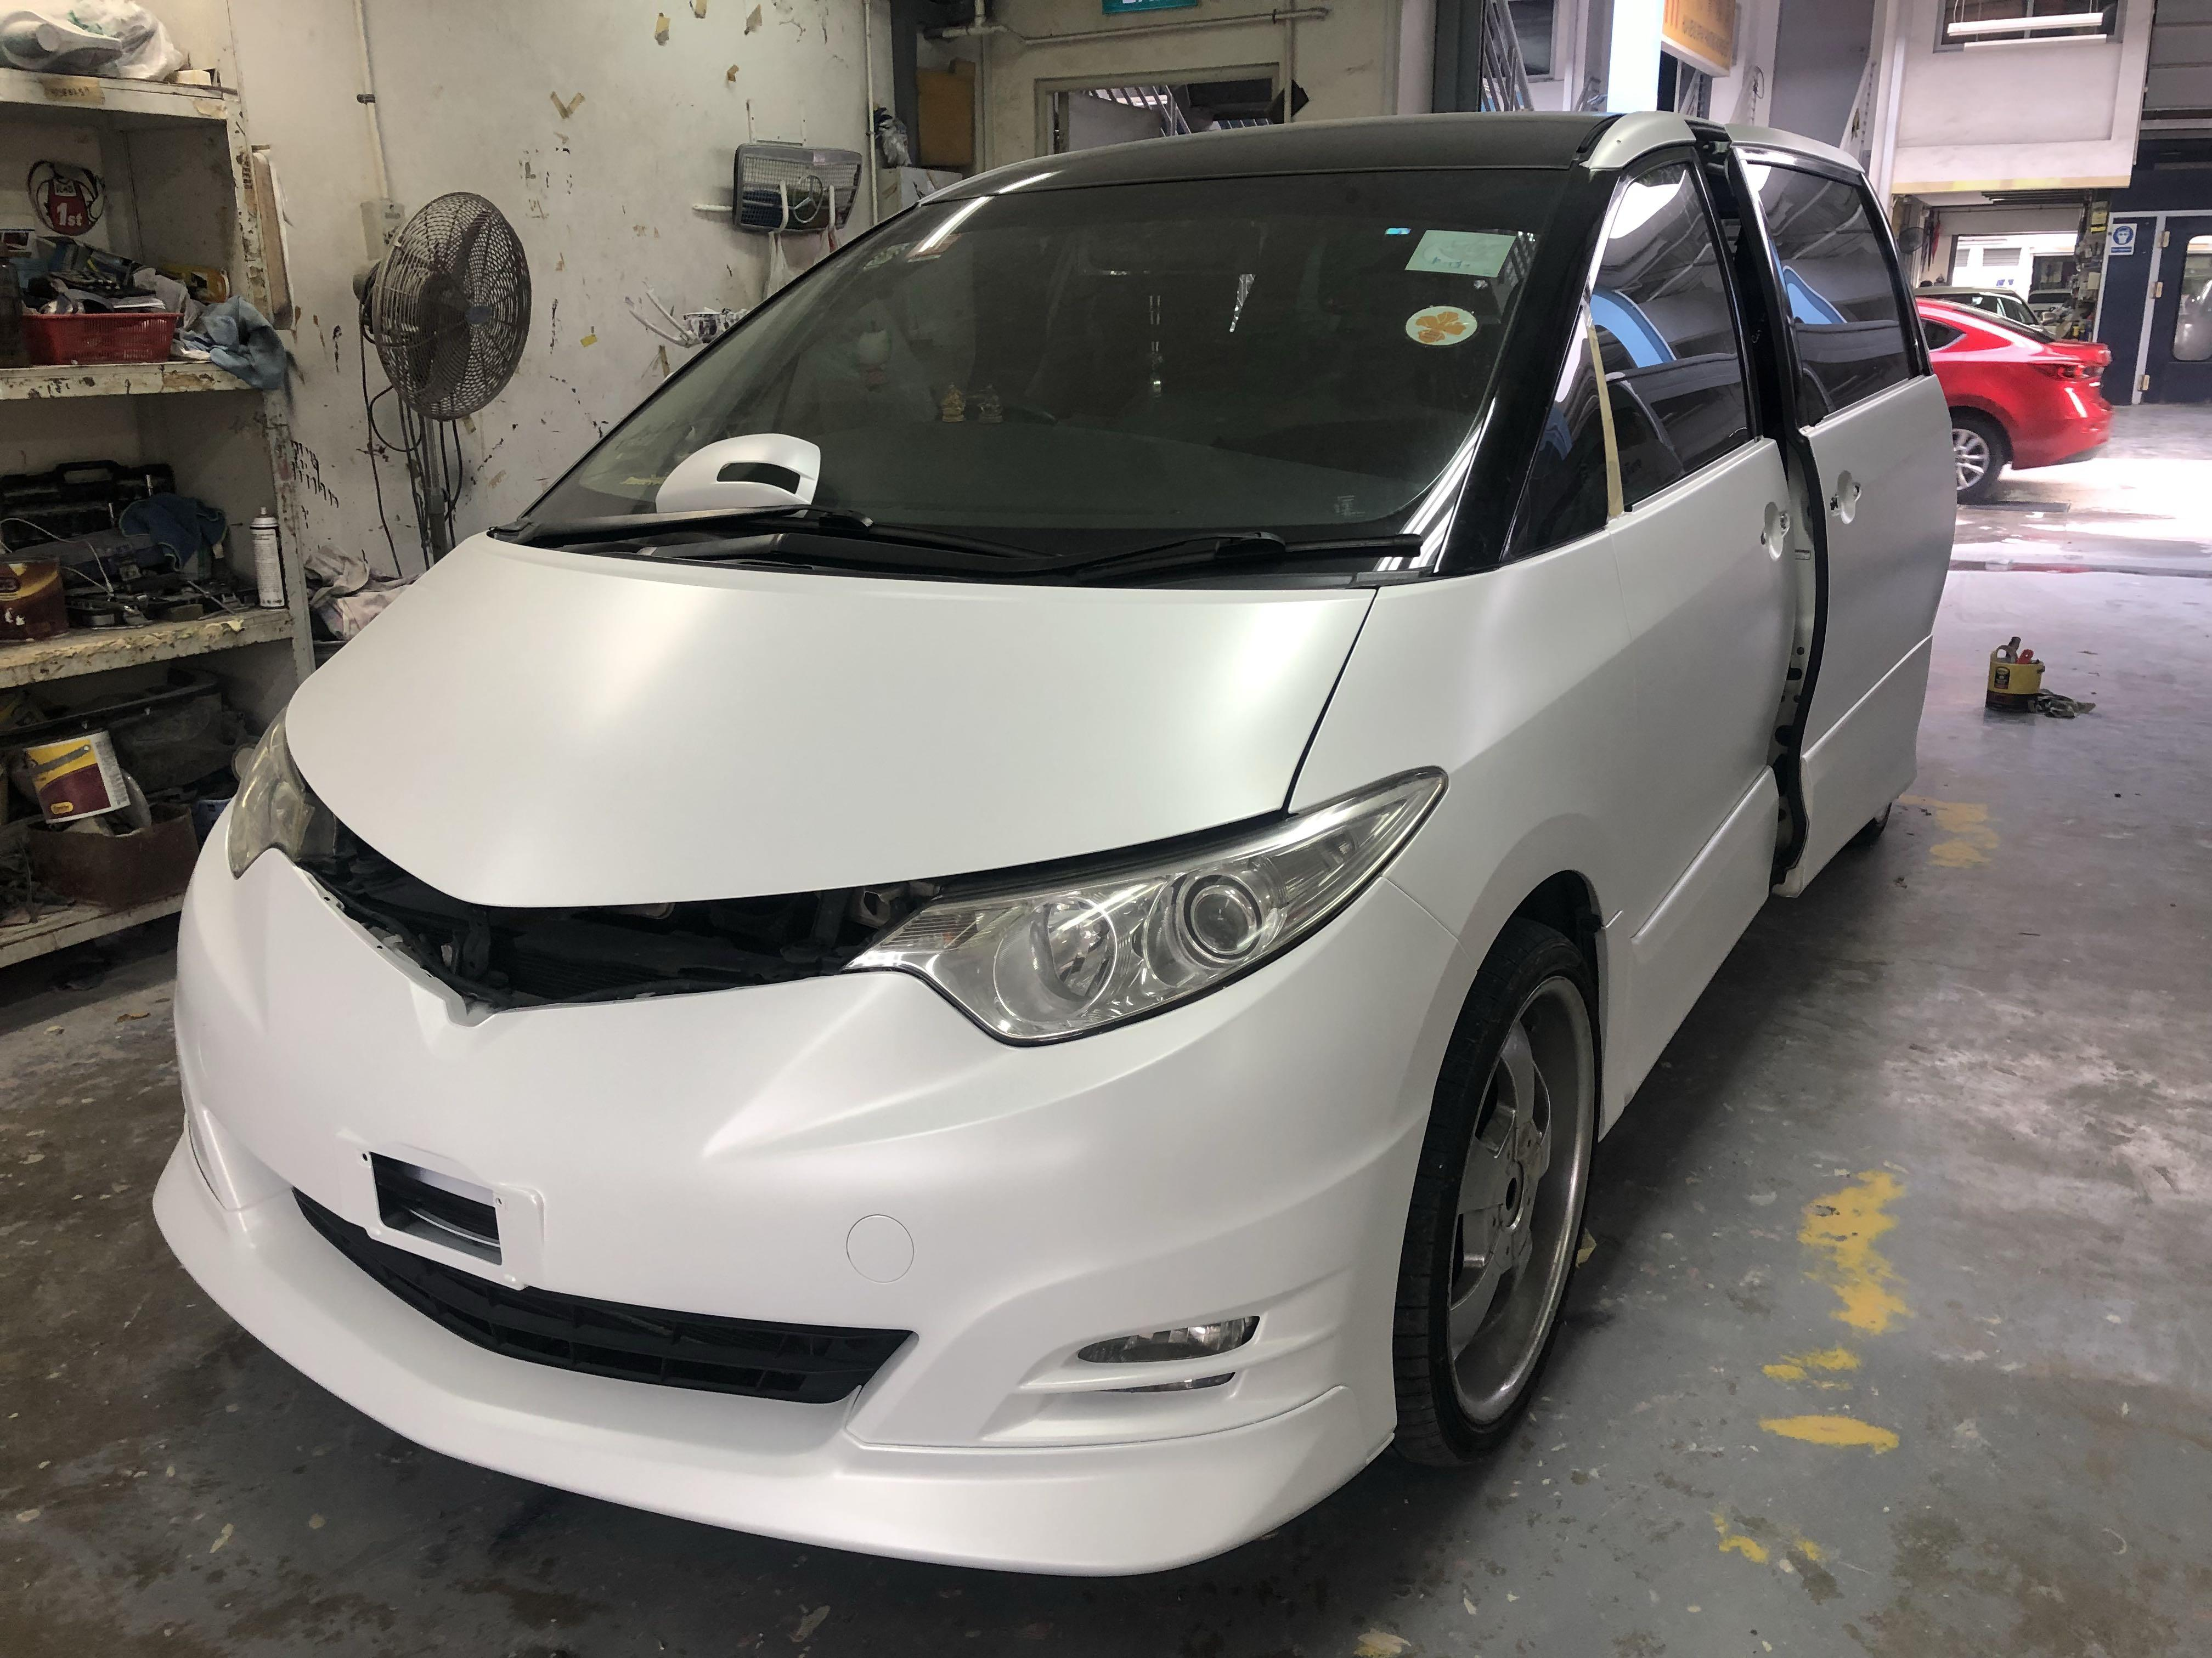 Car Spray Painting Matte White Car Accessories Car Workshops Services On Carousell